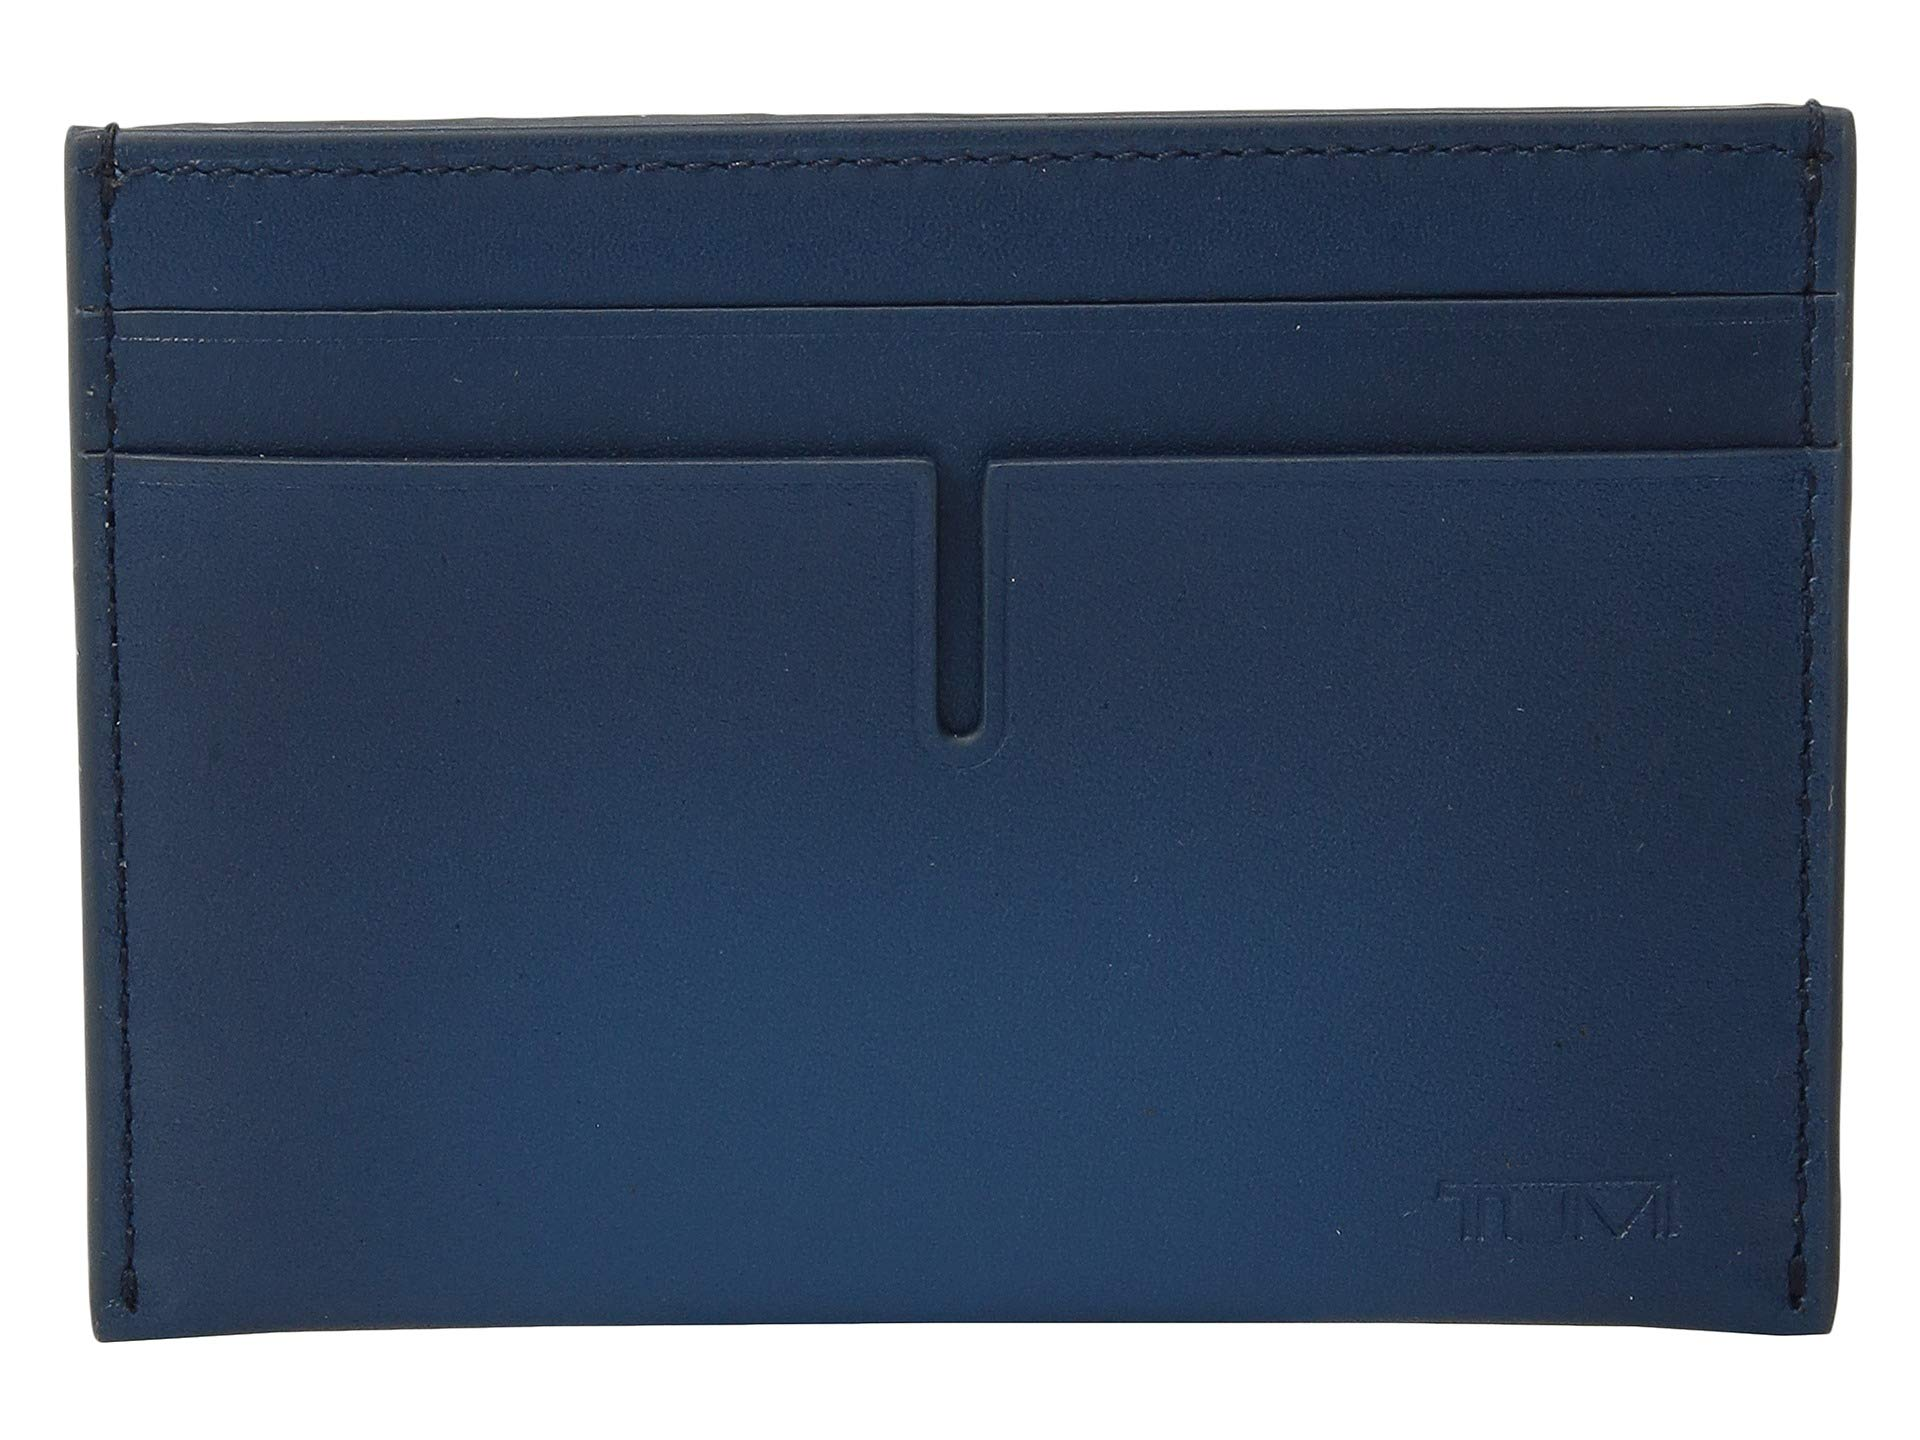 TUMI - Nassau Slim Card Case Wallet with RFID ID Lock for Men - Blue Burnished